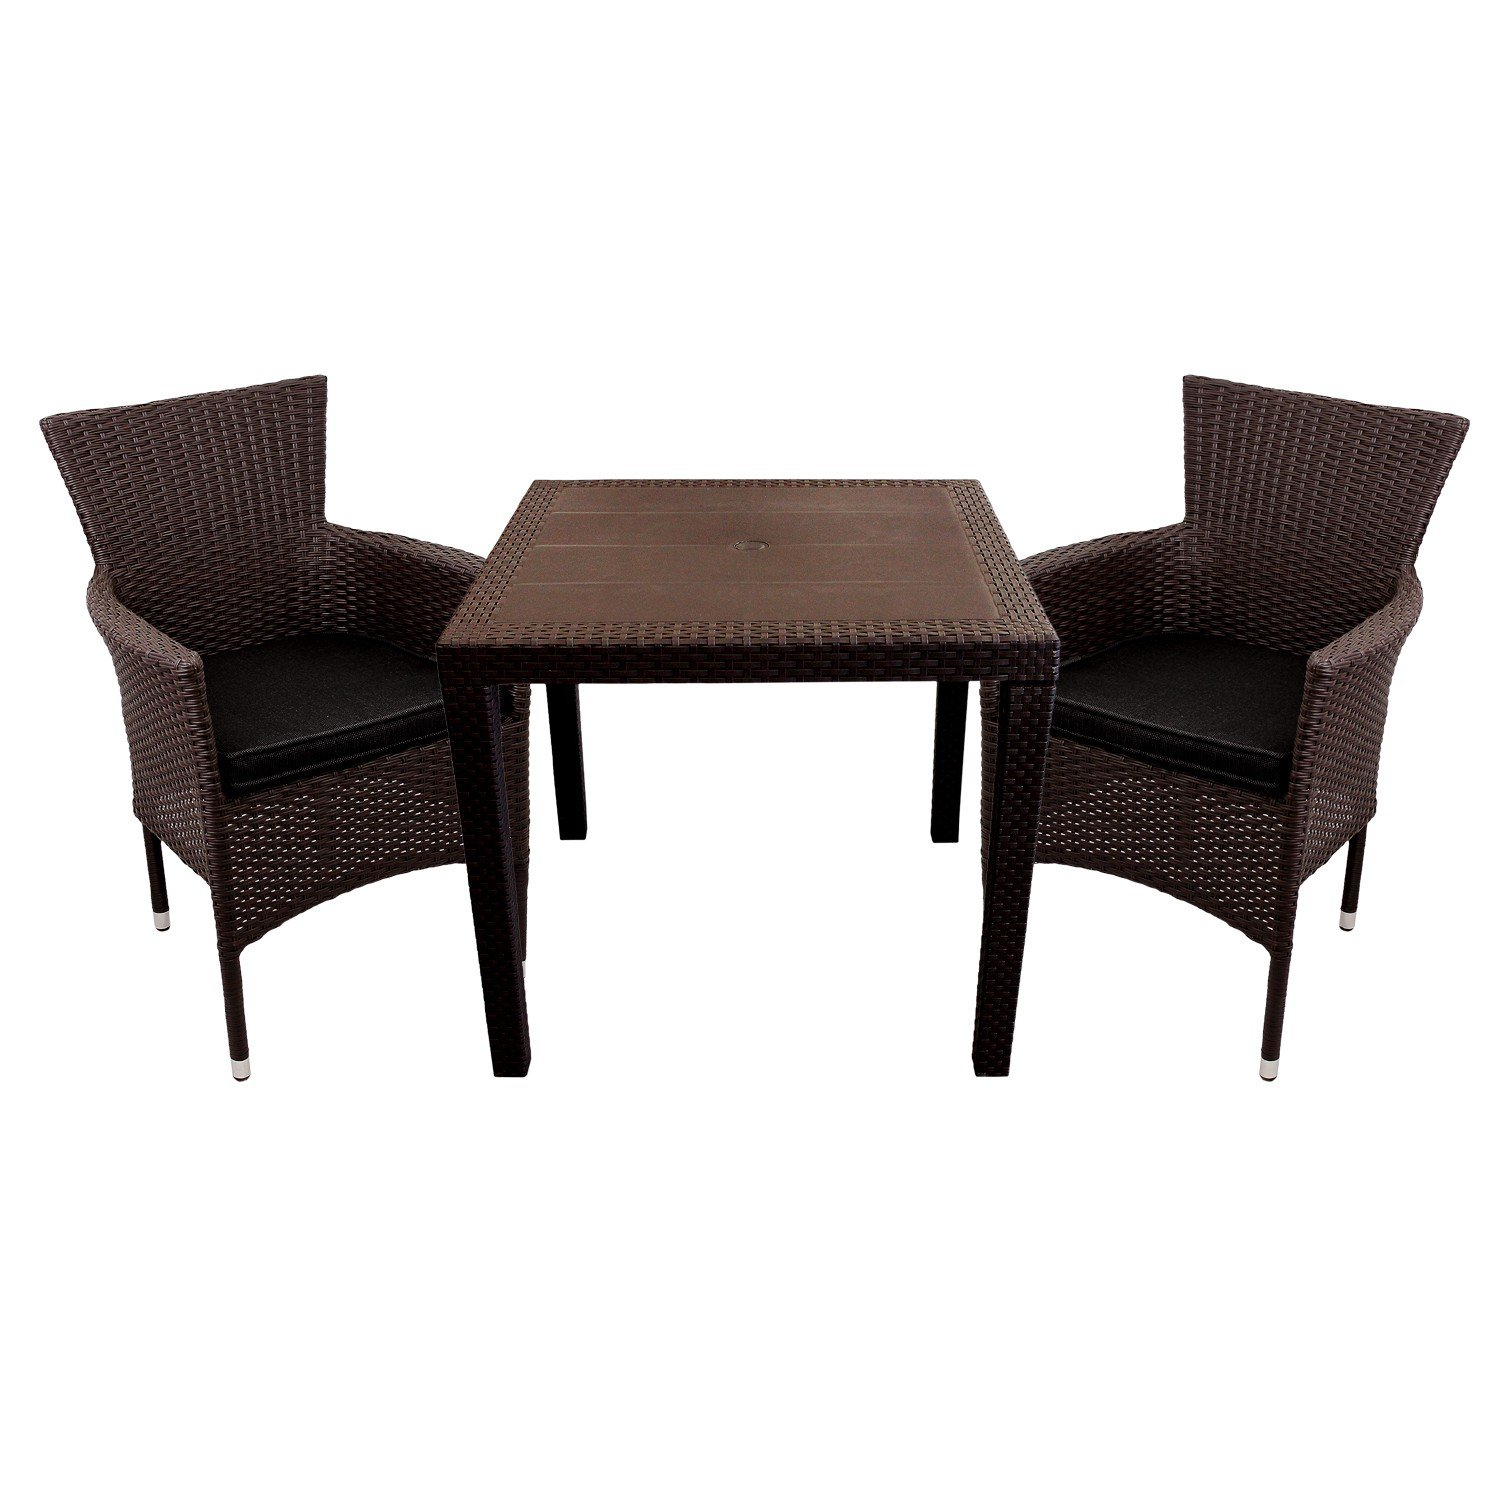 balkonmoebel set rattan balkonm bel set balkonset terrassenm bel platzsparend box balkonmoebel. Black Bedroom Furniture Sets. Home Design Ideas